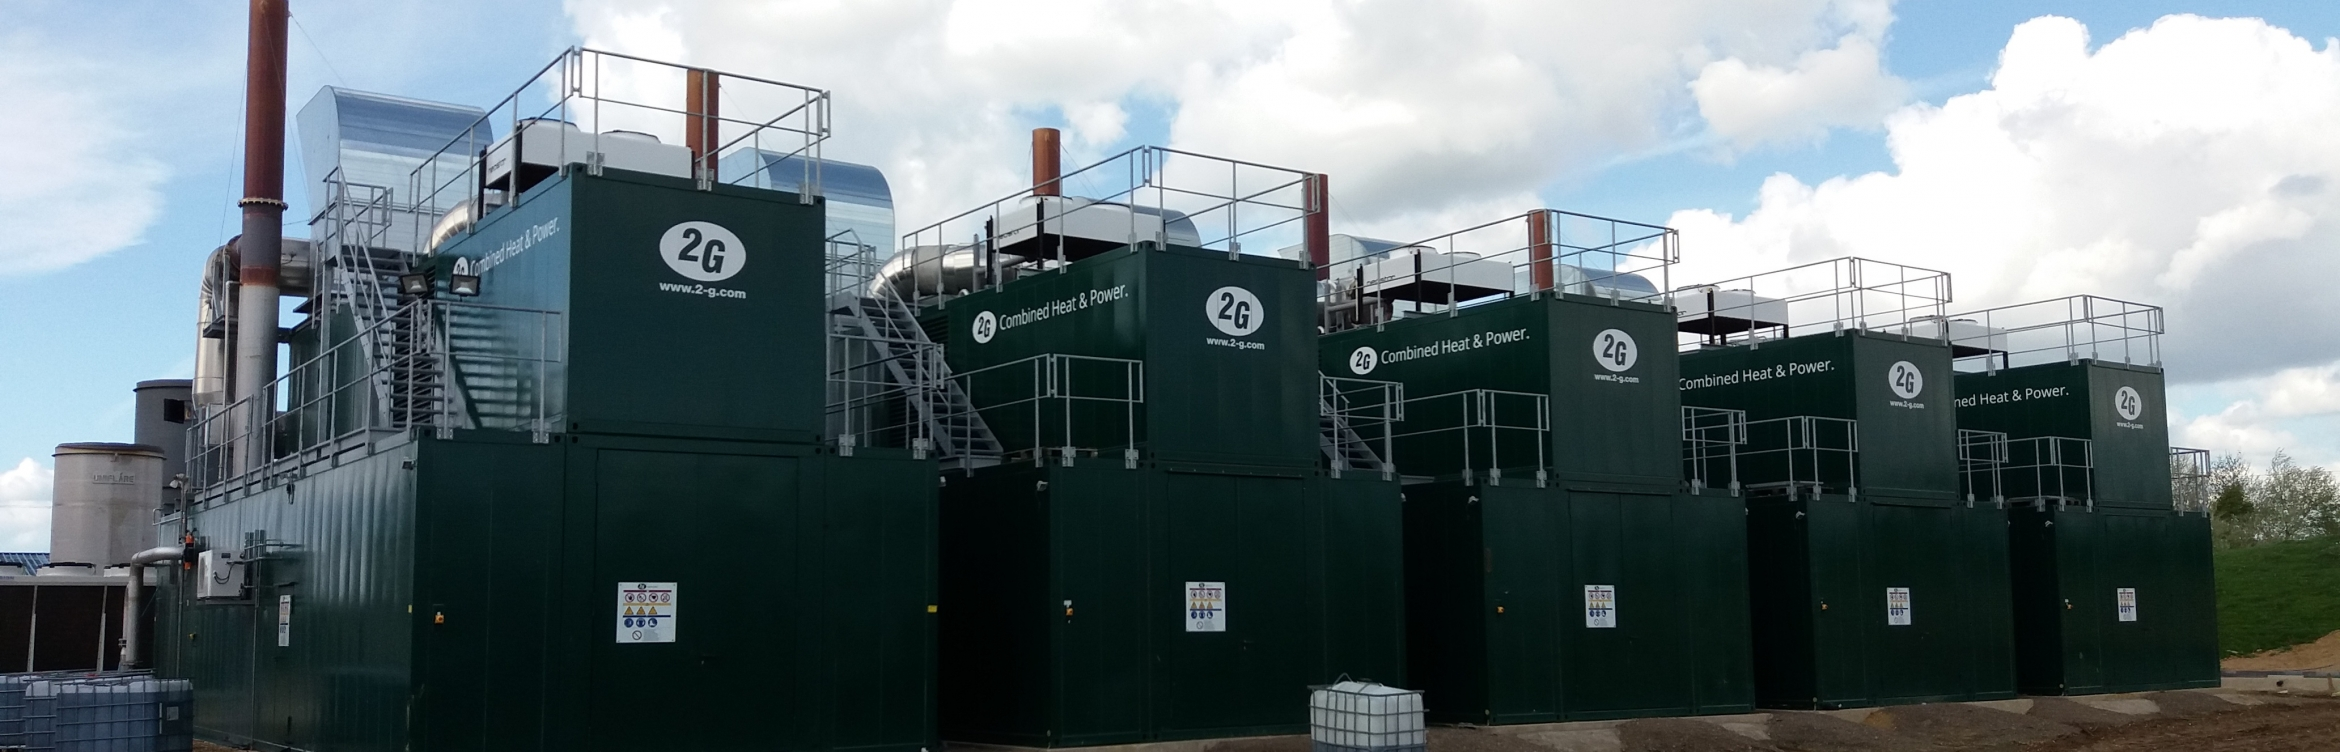 Combined heat and power energy generation equipment at an NFU Energy client site